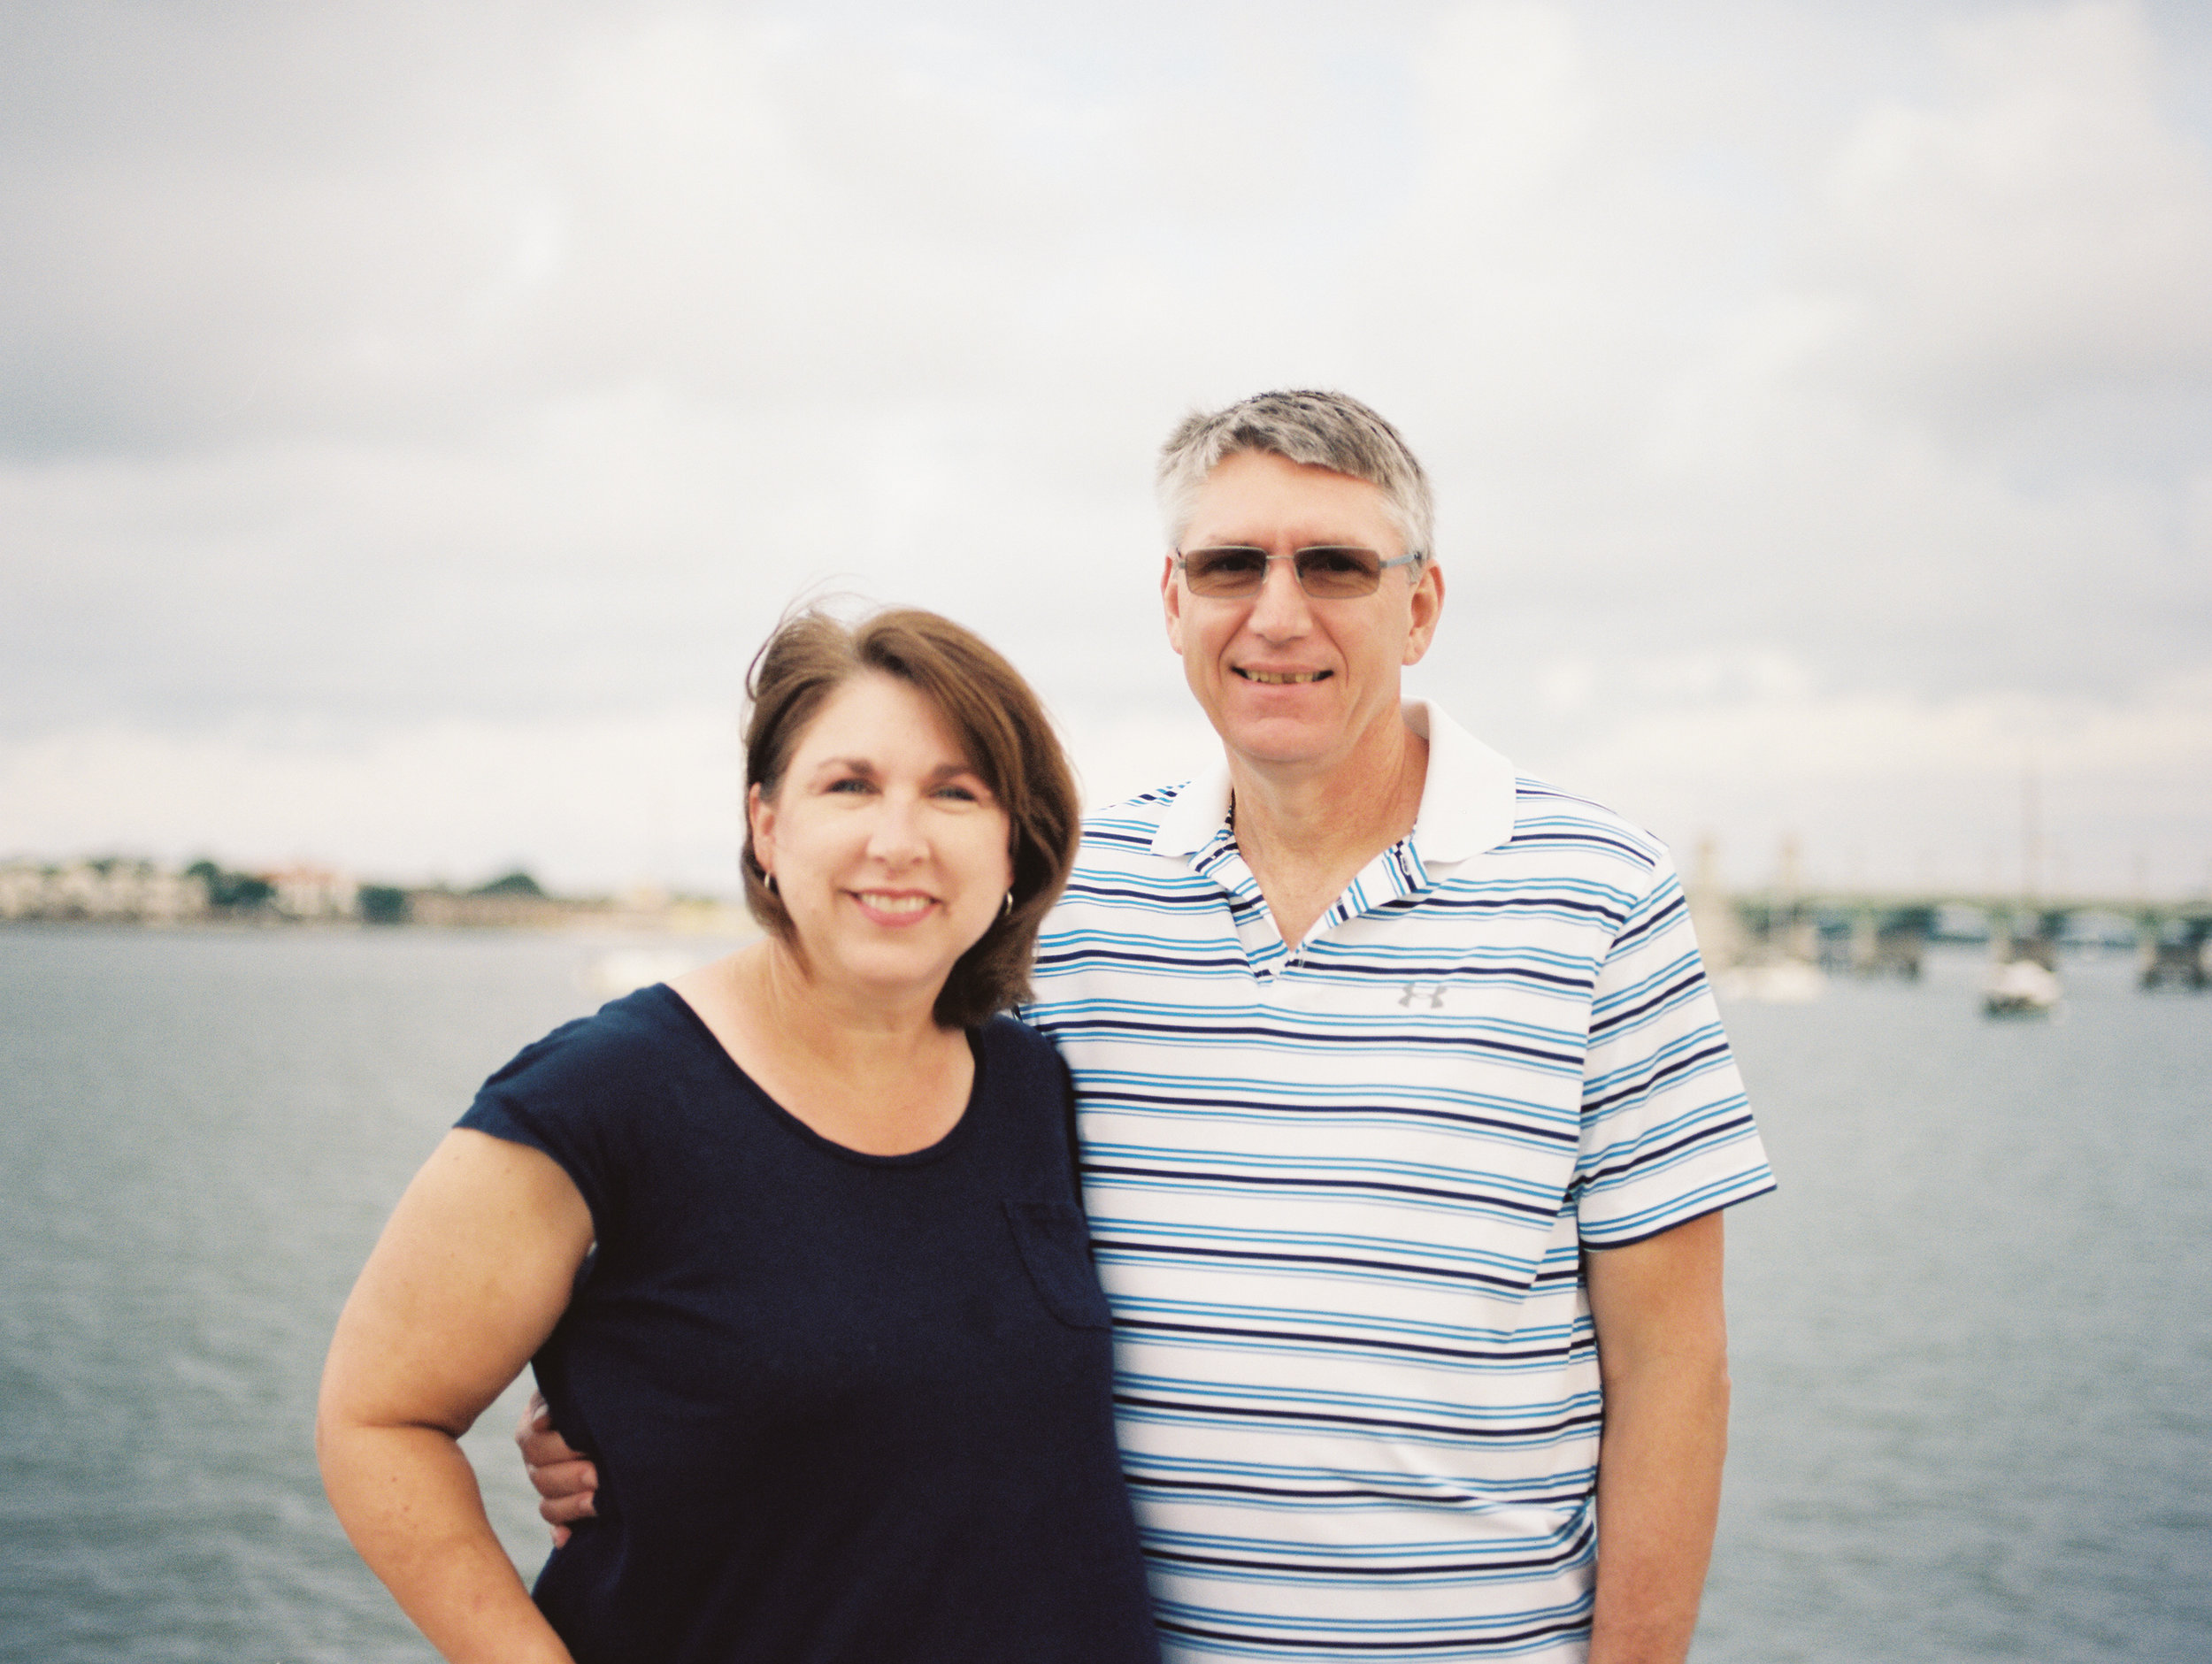 mom and dad st augustine travel film photographer